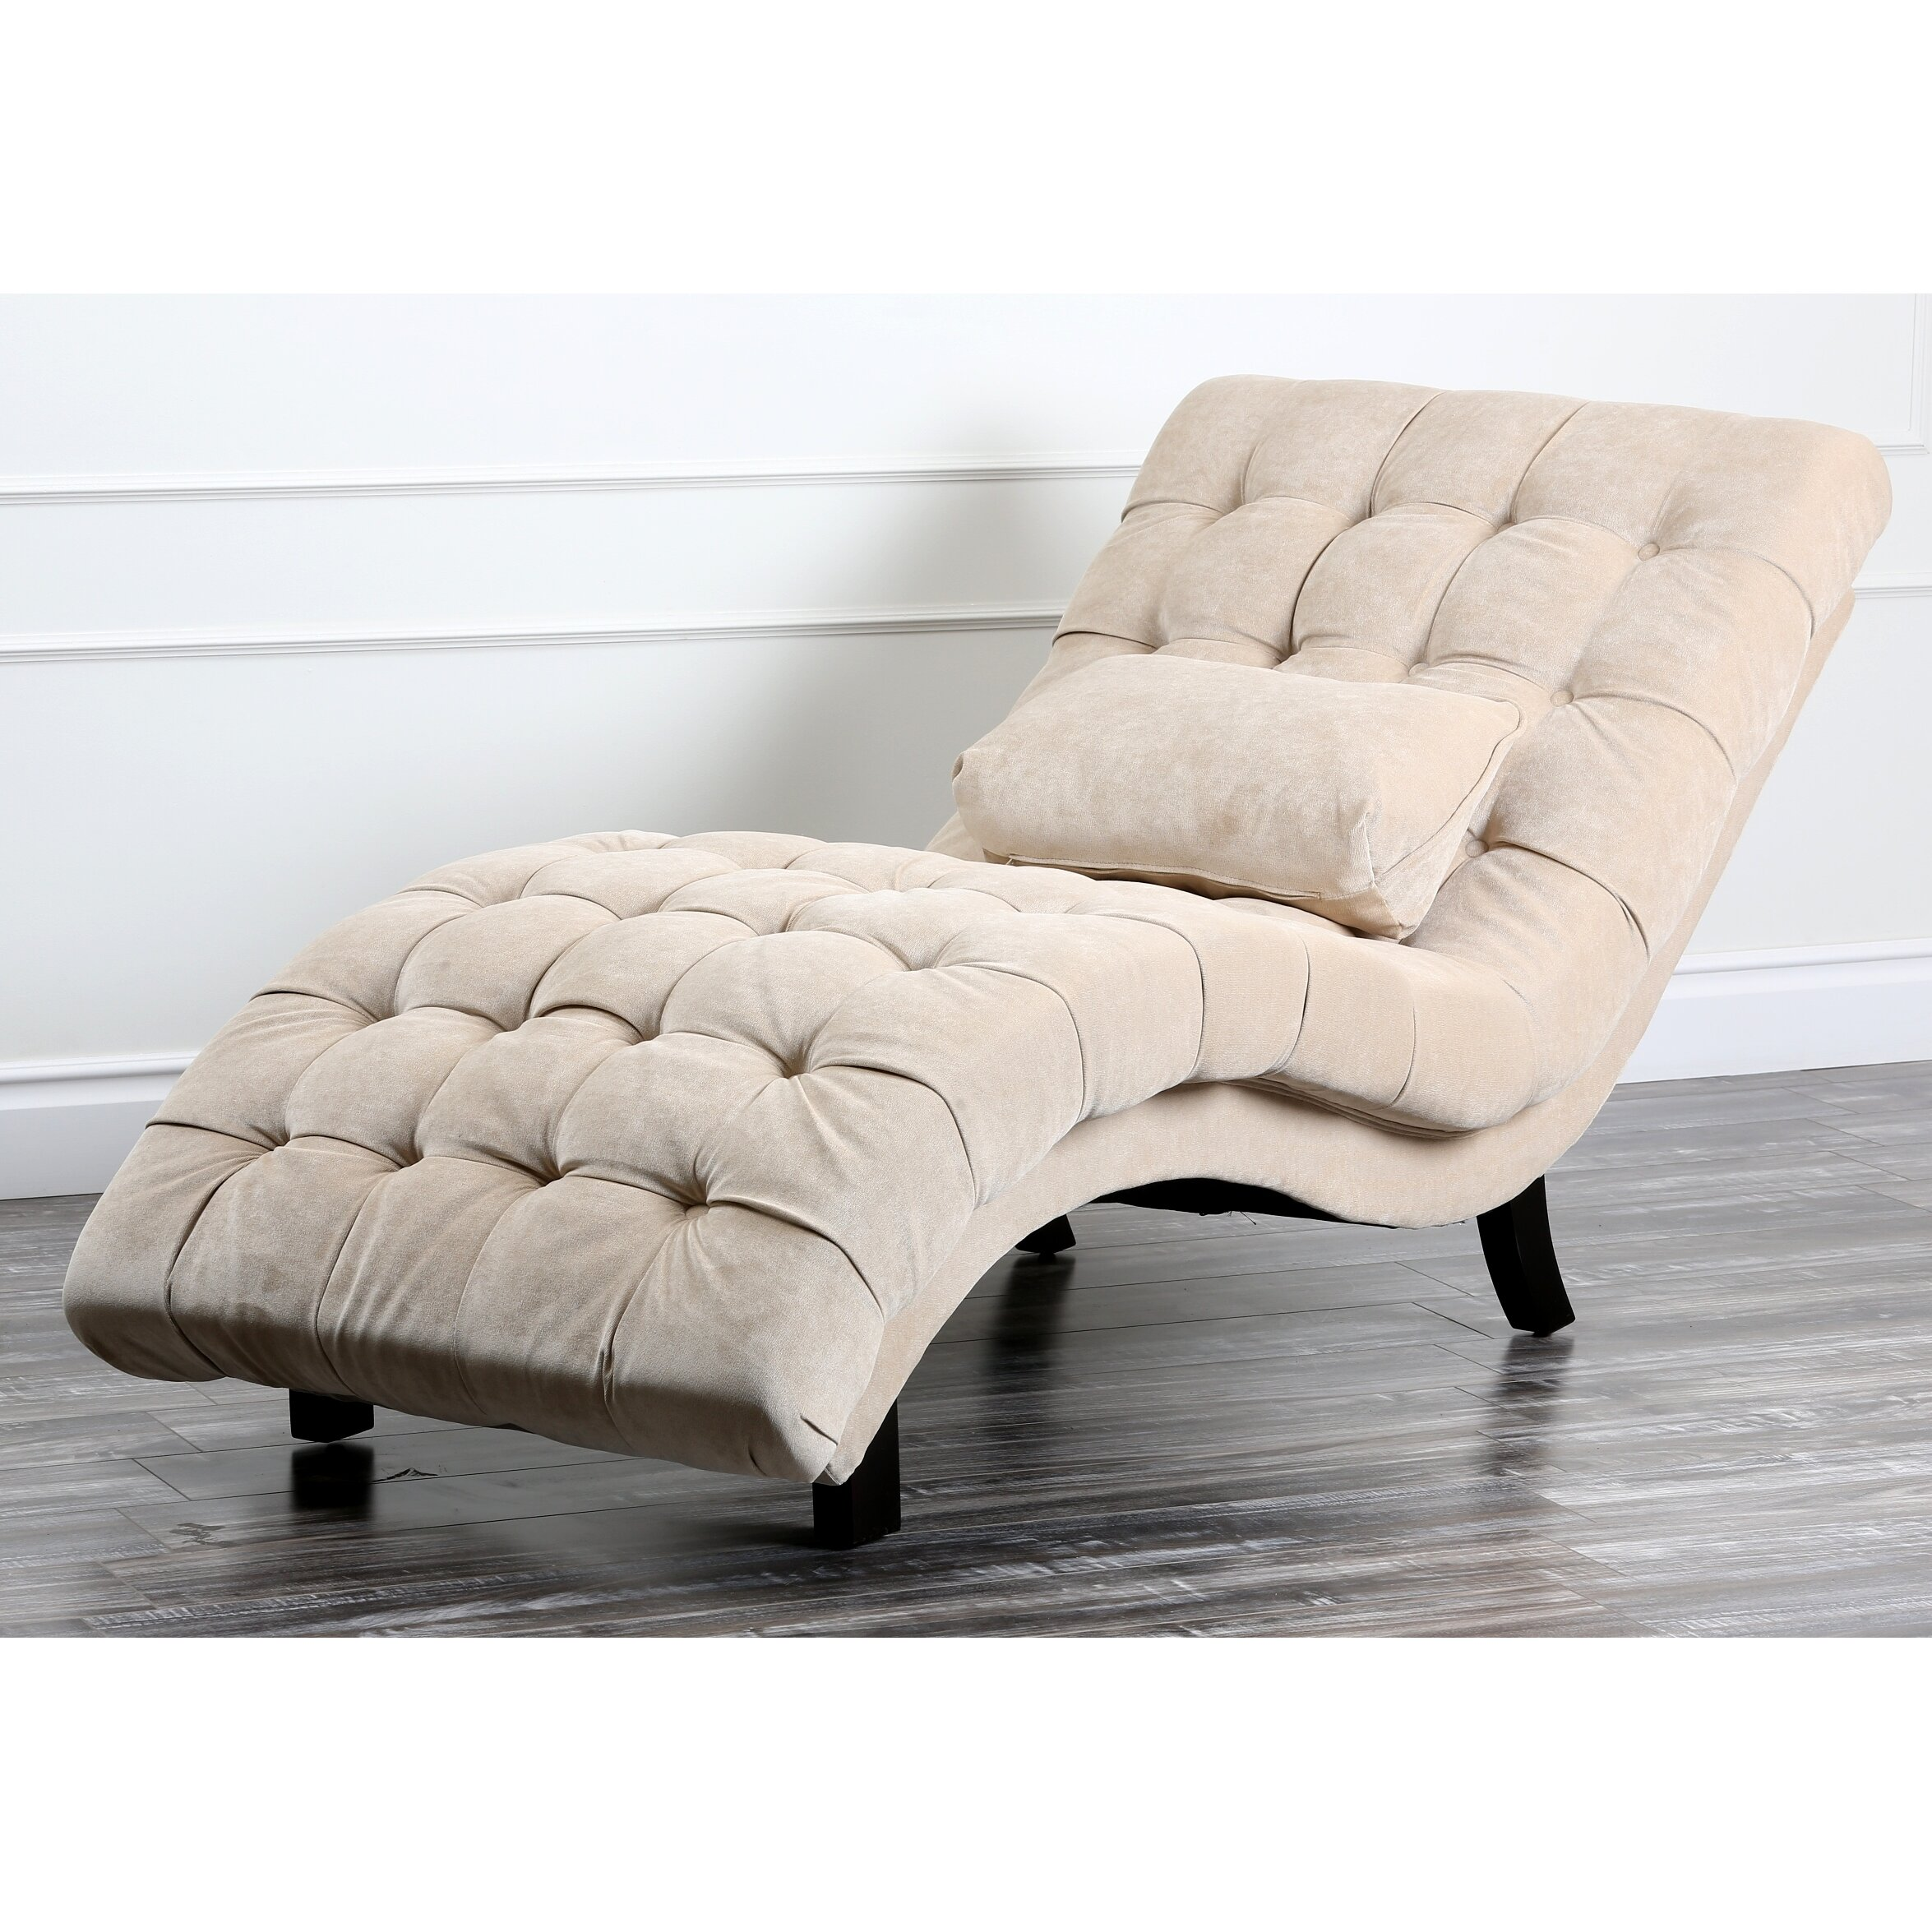 House of hampton lizard fabric chaise lounge reviews for Chaise and lounge